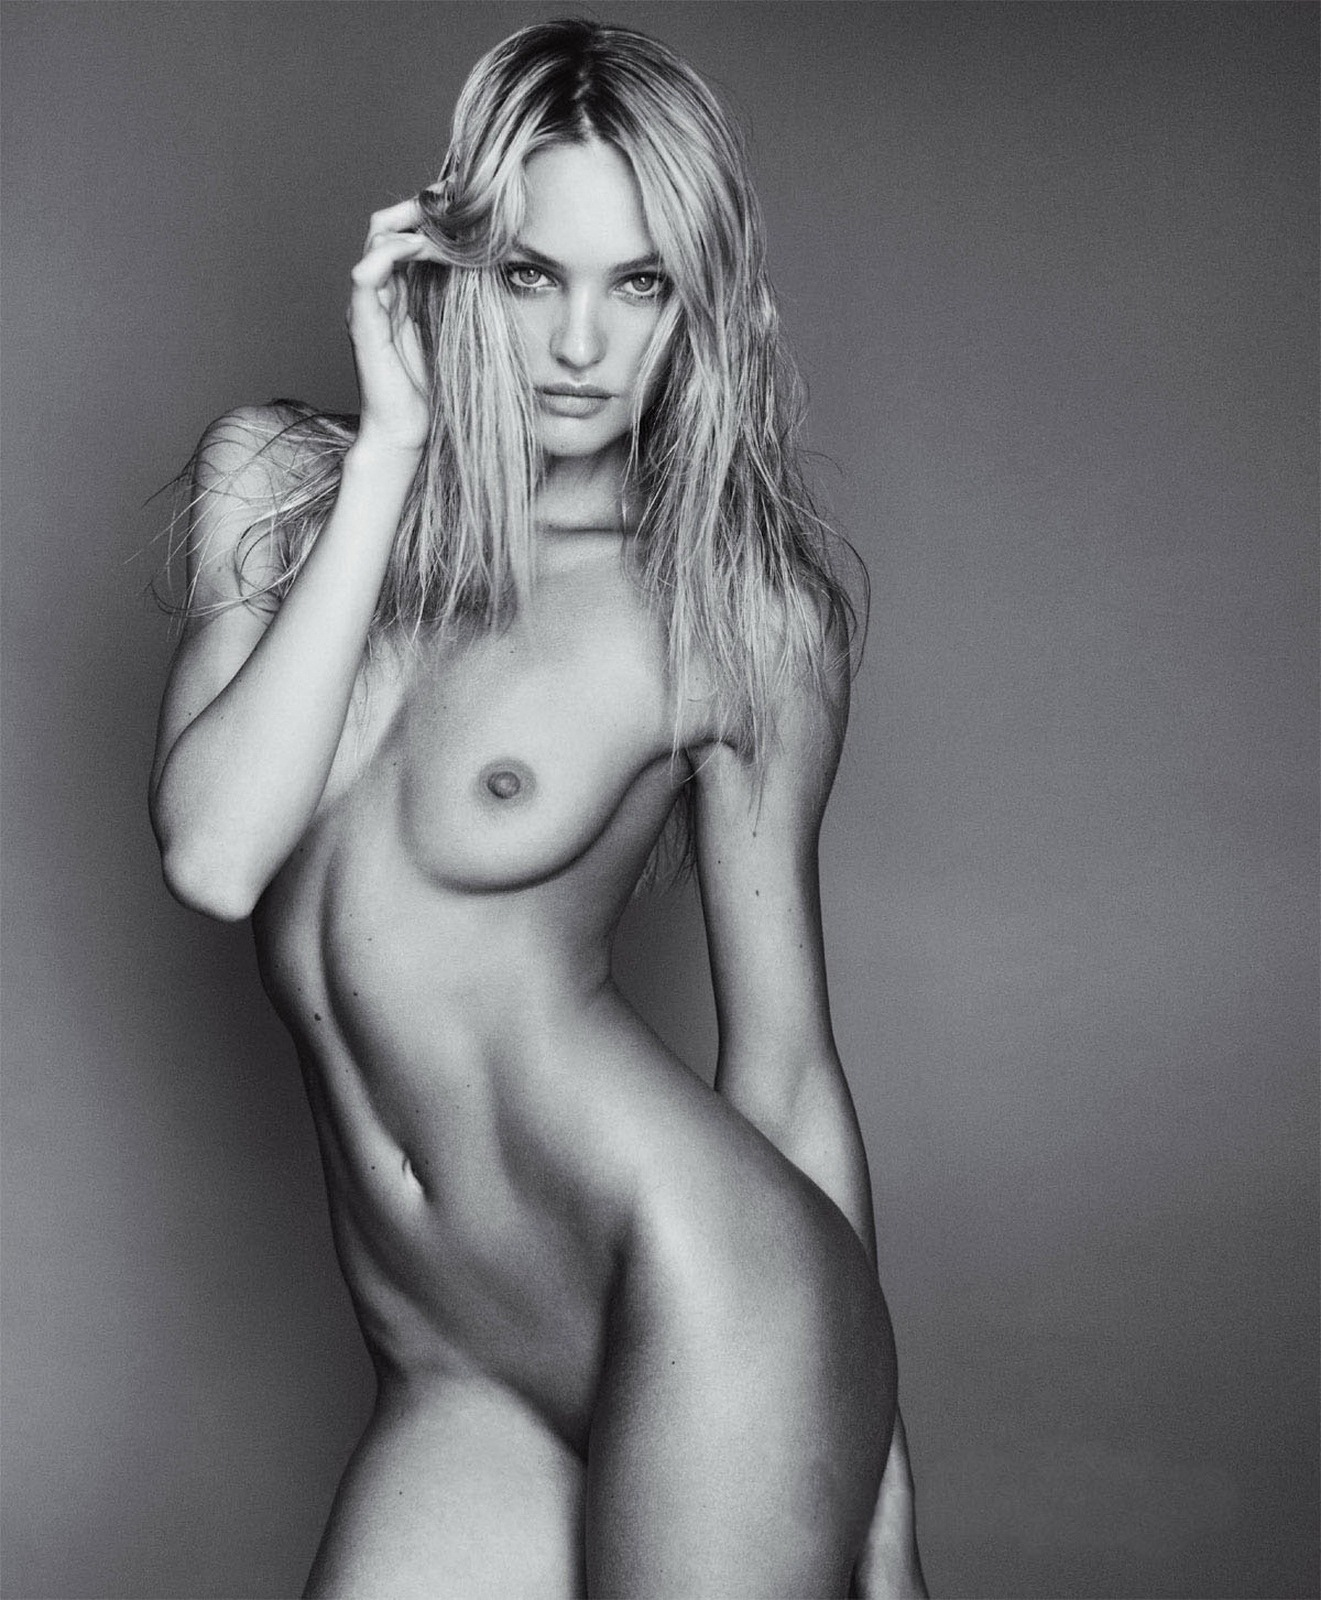 Share your candice swanepoel celebrity leaked nudes are